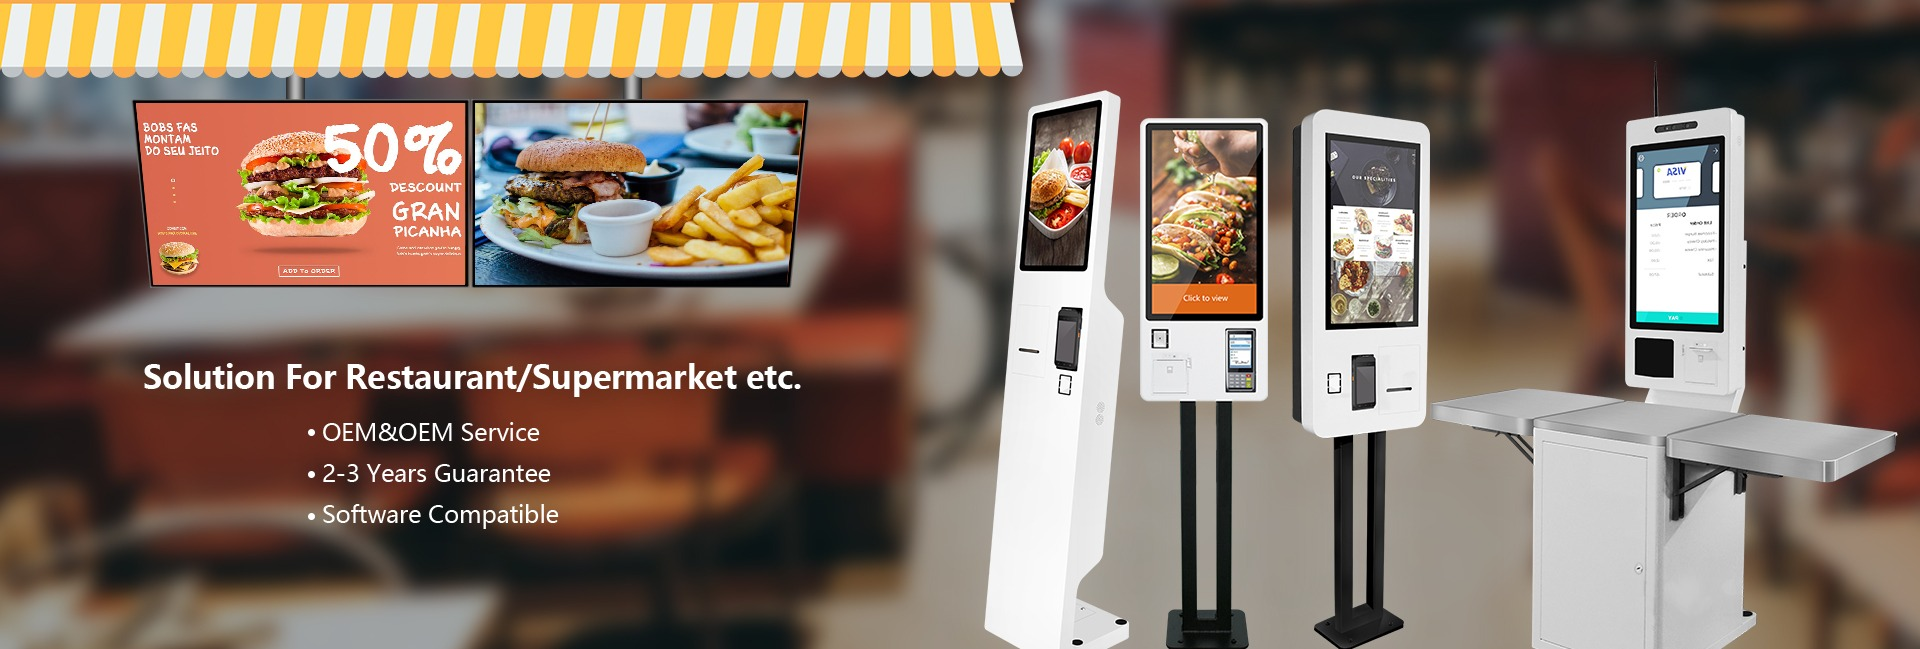 restaurant mobile apps Digital Screens and self order kiosk